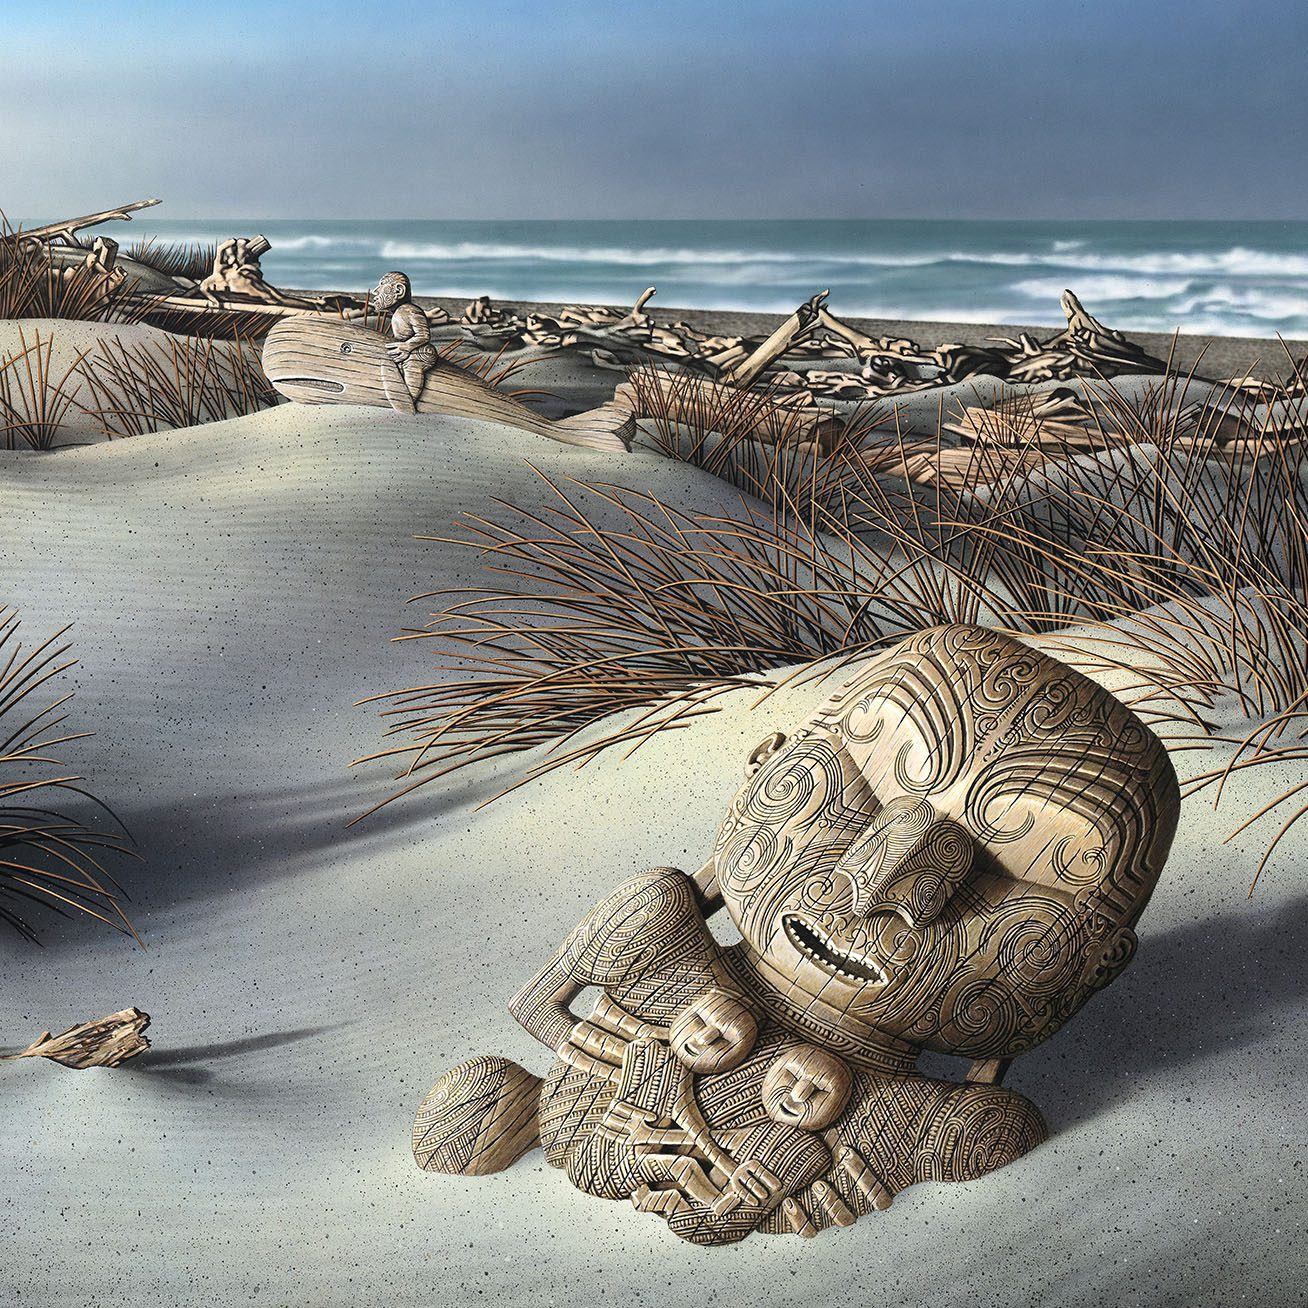 Warriors and Chiefs, Canoes and Creatures: Paintings on Iconic Maori Carvings by Alvin Pankhurst